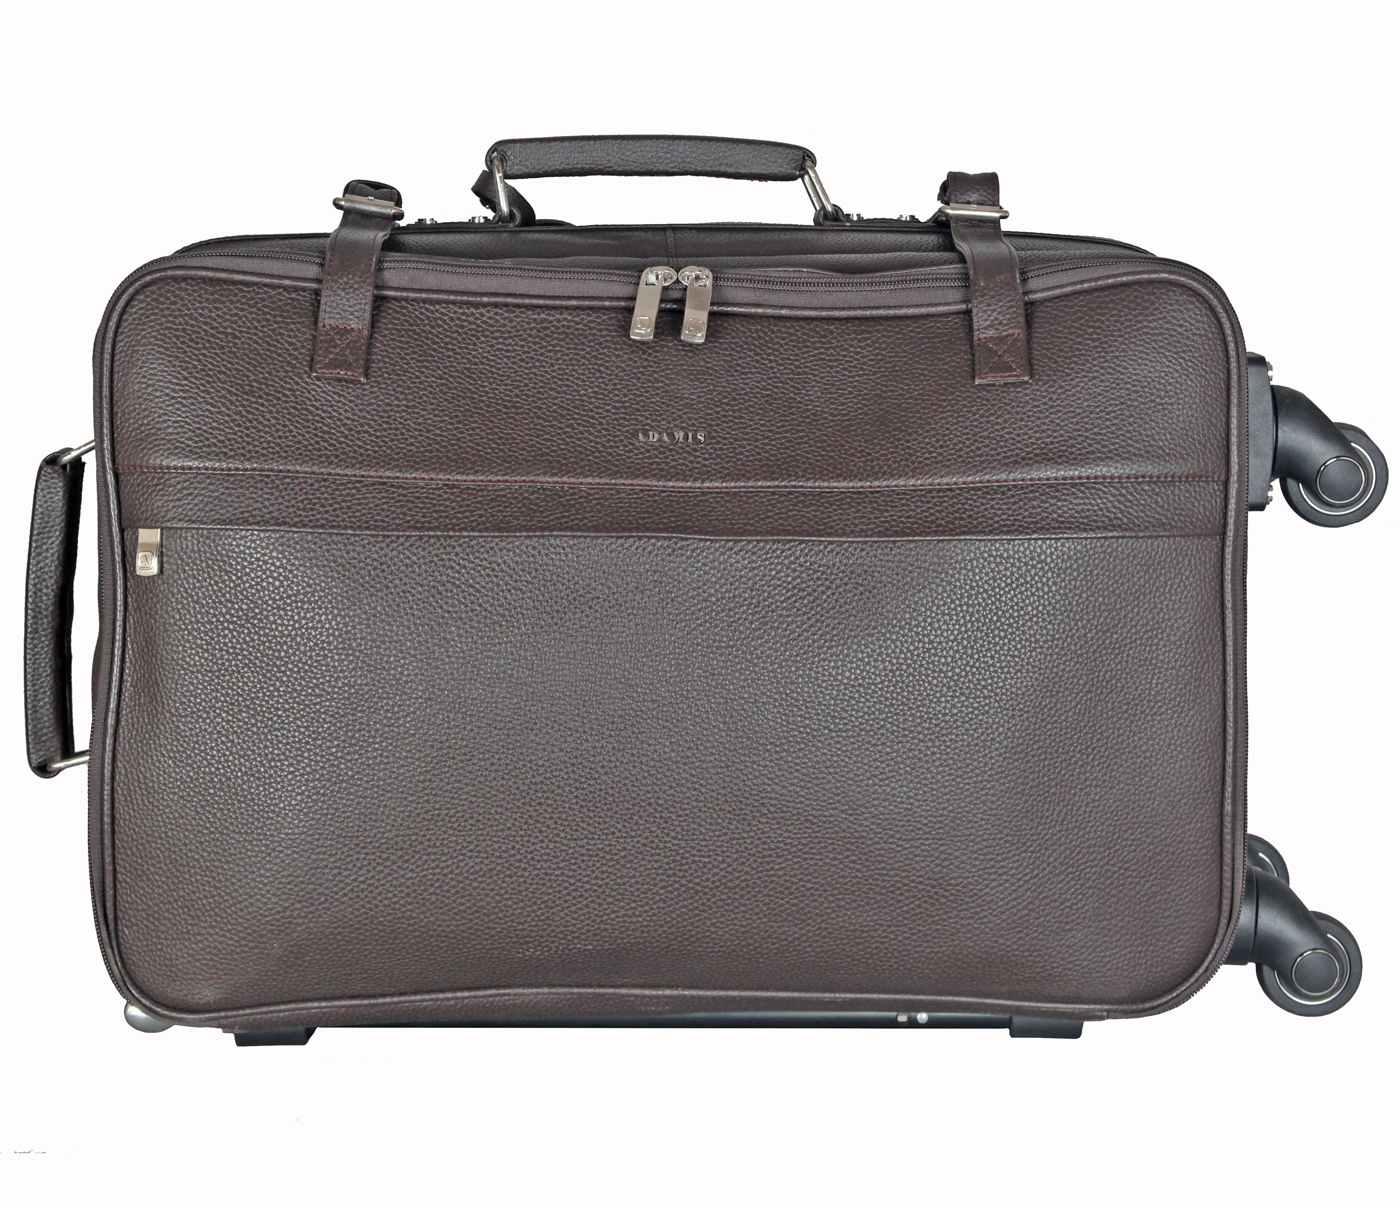 T35-Jiacobbe-Travel multi compartment cabin luggage strolley in Genuine Leather - Brown